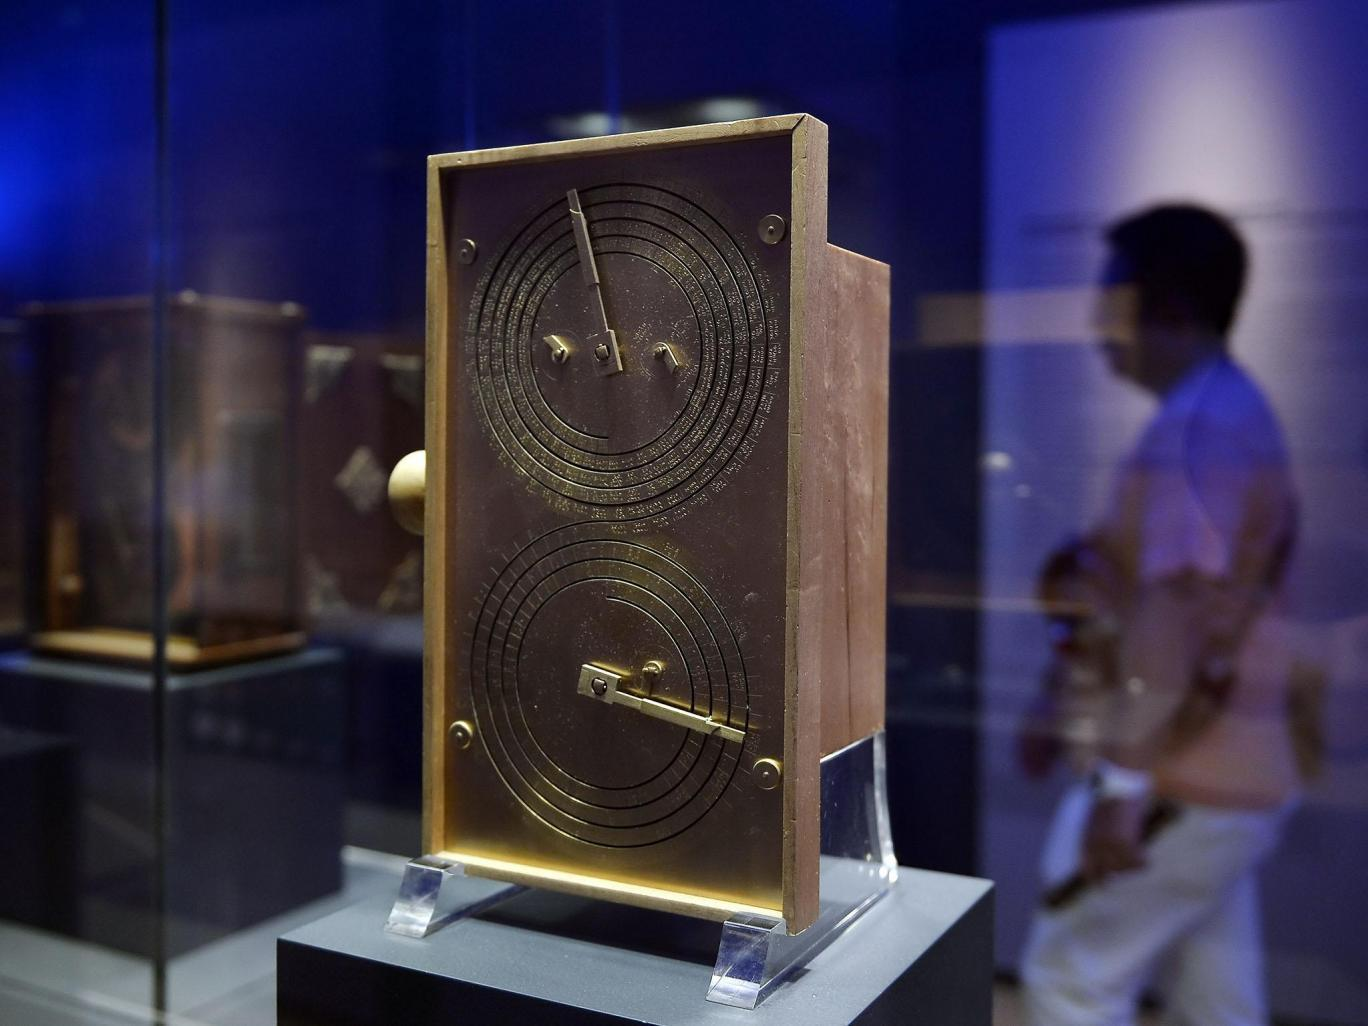 World's oldest computer continues to reveal secrets of the ancient world